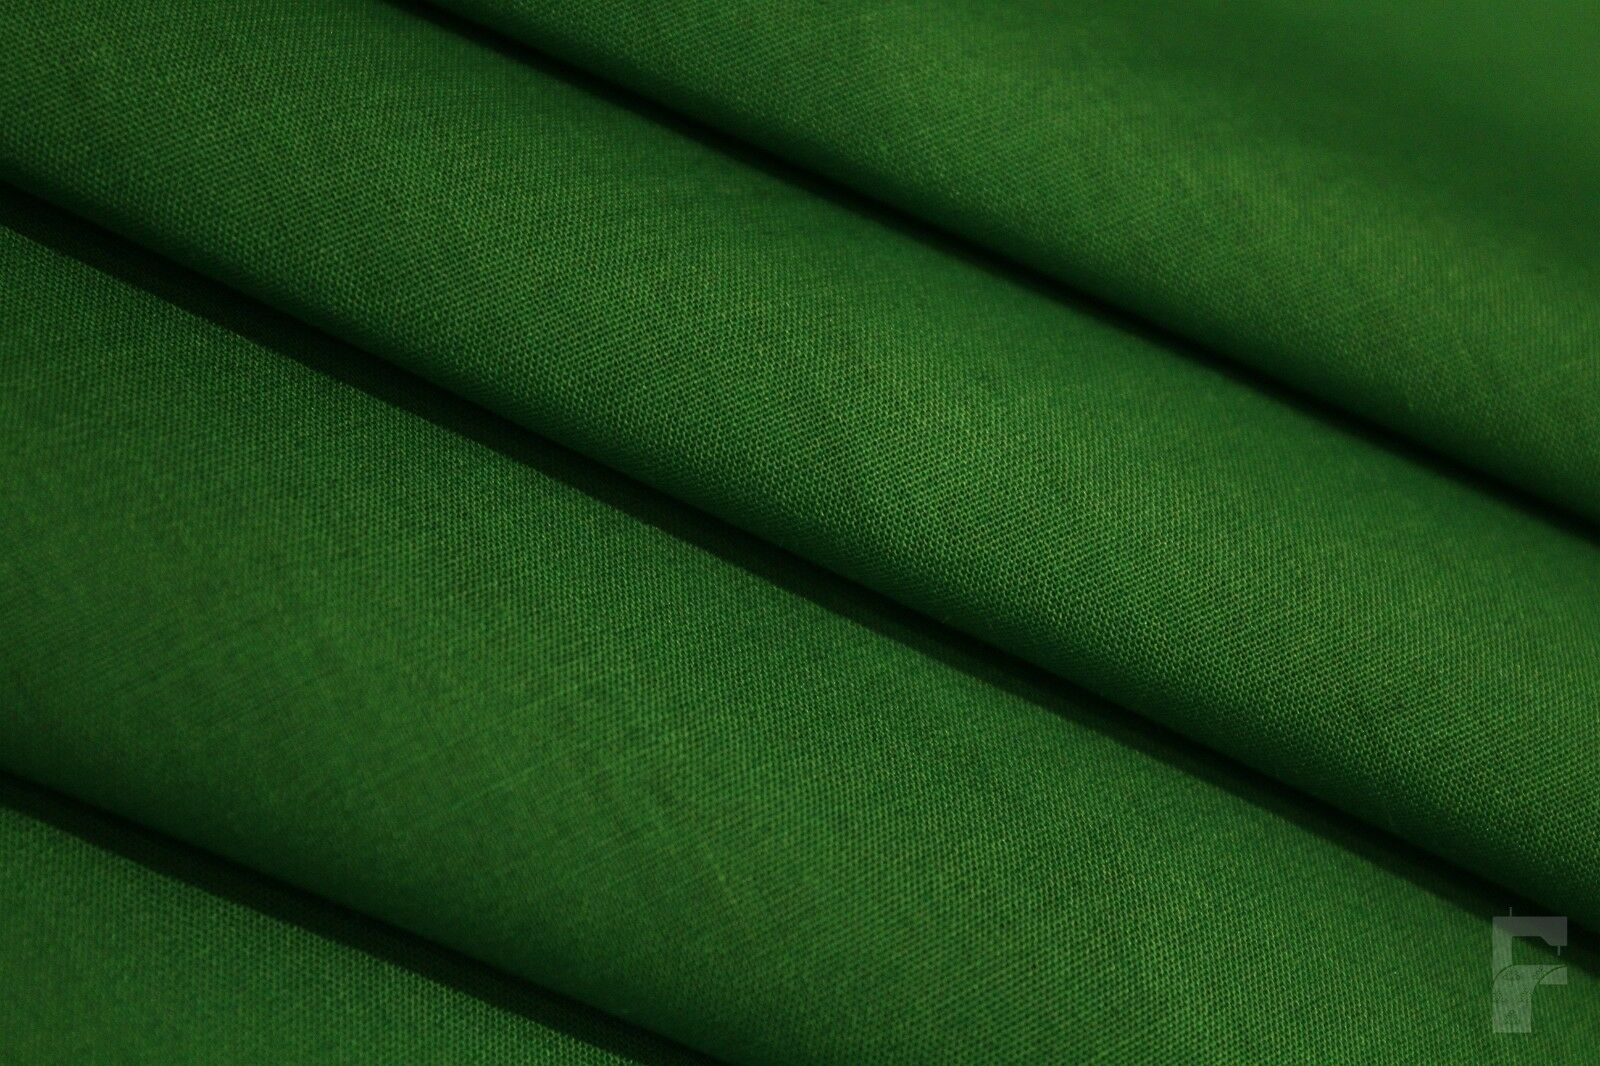 30m Roll of Polycotton Fabric Wholesale Price-over 30 colours to choose from